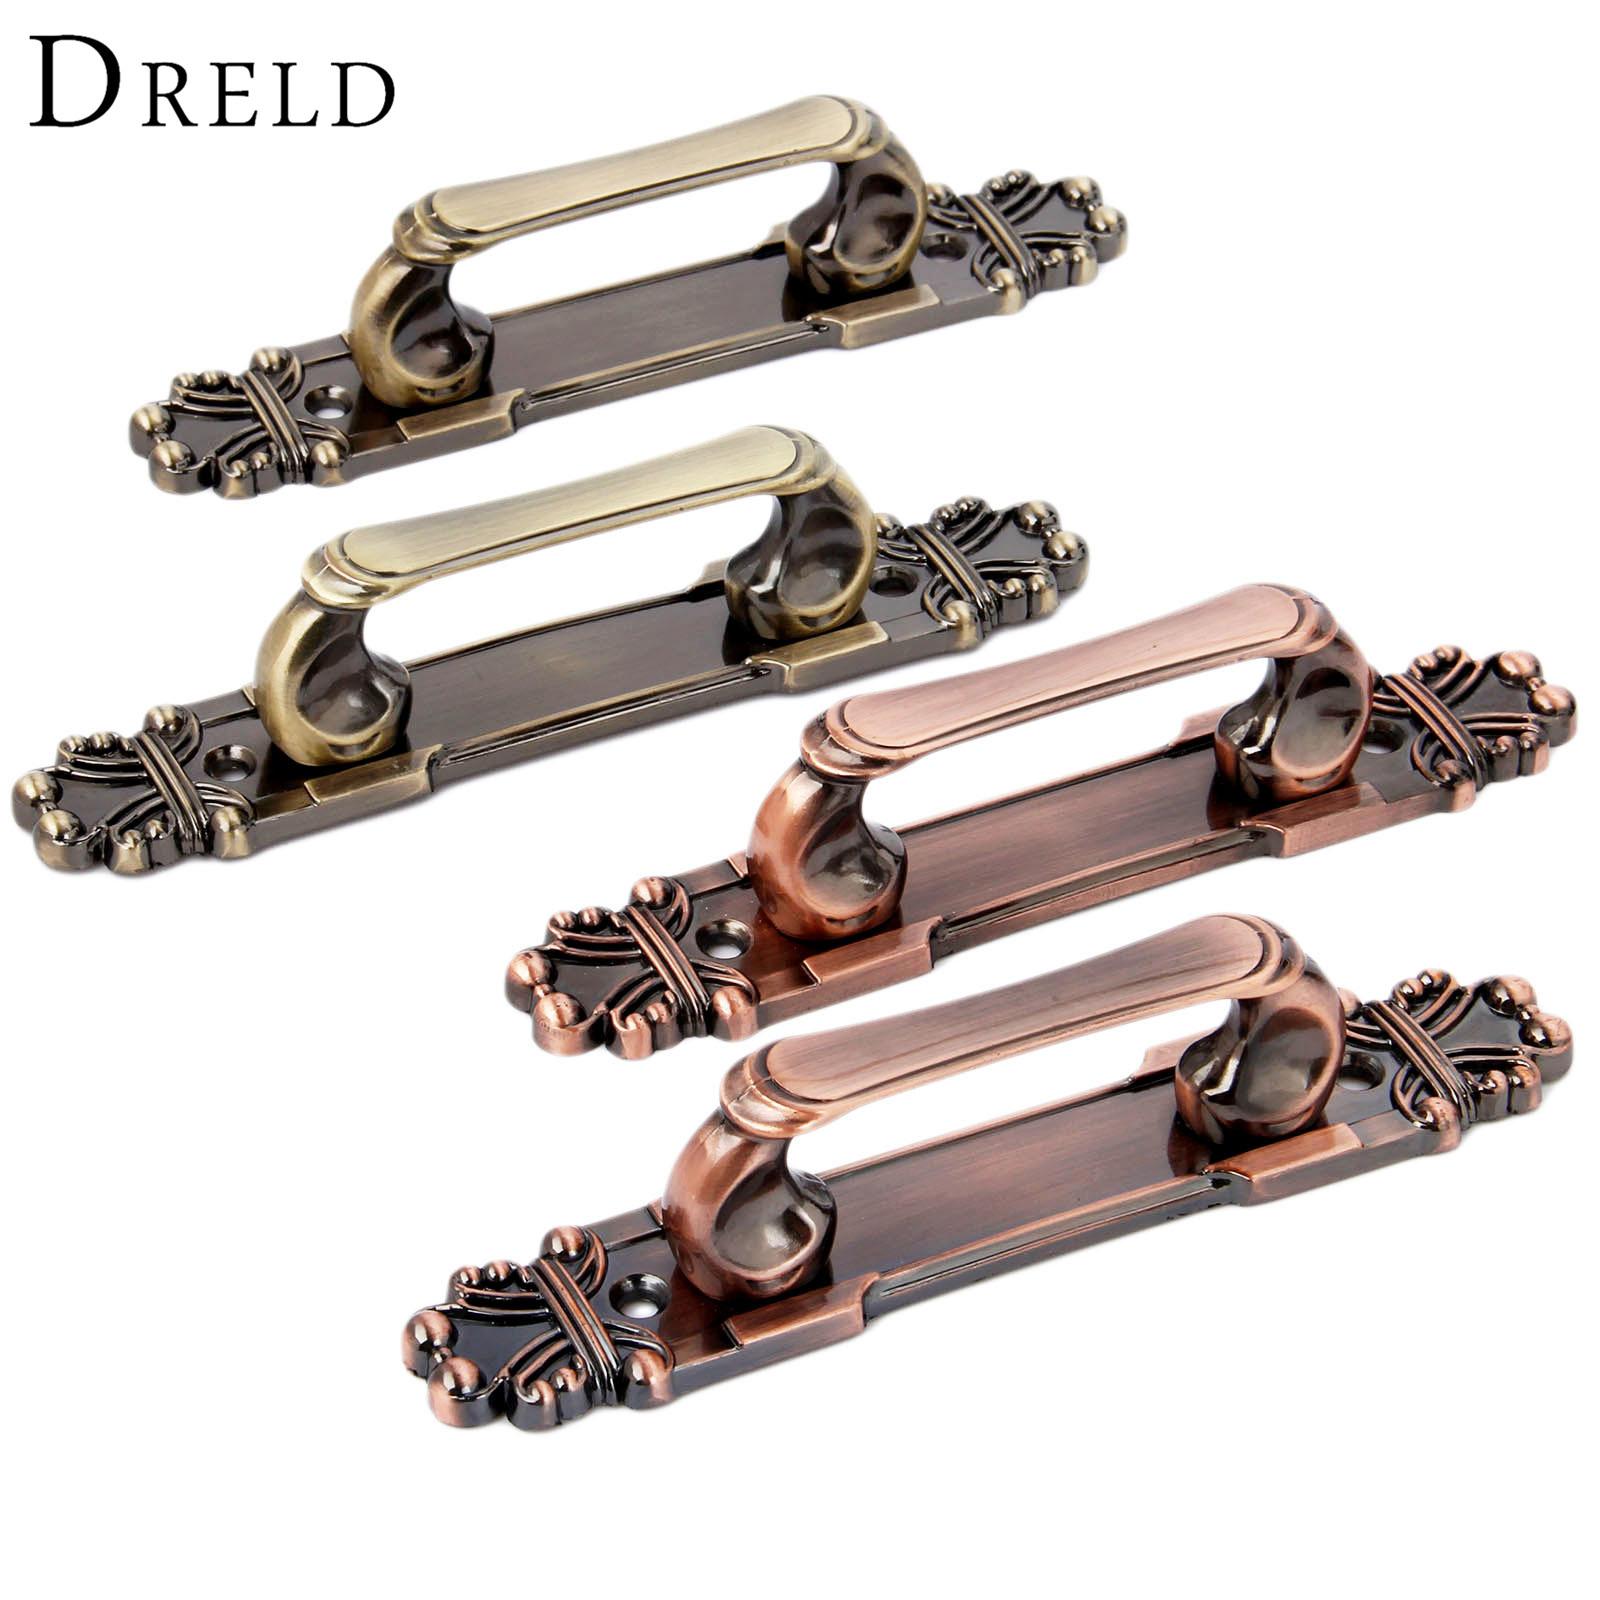 DRELD 2Pcs Antique Furniture Handles Zinc Alloy Door Pull Handle Vintage Drawer Cabinet Knobs and Handles Kitchen Furniture Knob 1 pair 96mm vintage furniture cupboard wardrobe handles and knobs antique bronze alloy kitchen cabinet door drawer pull handle